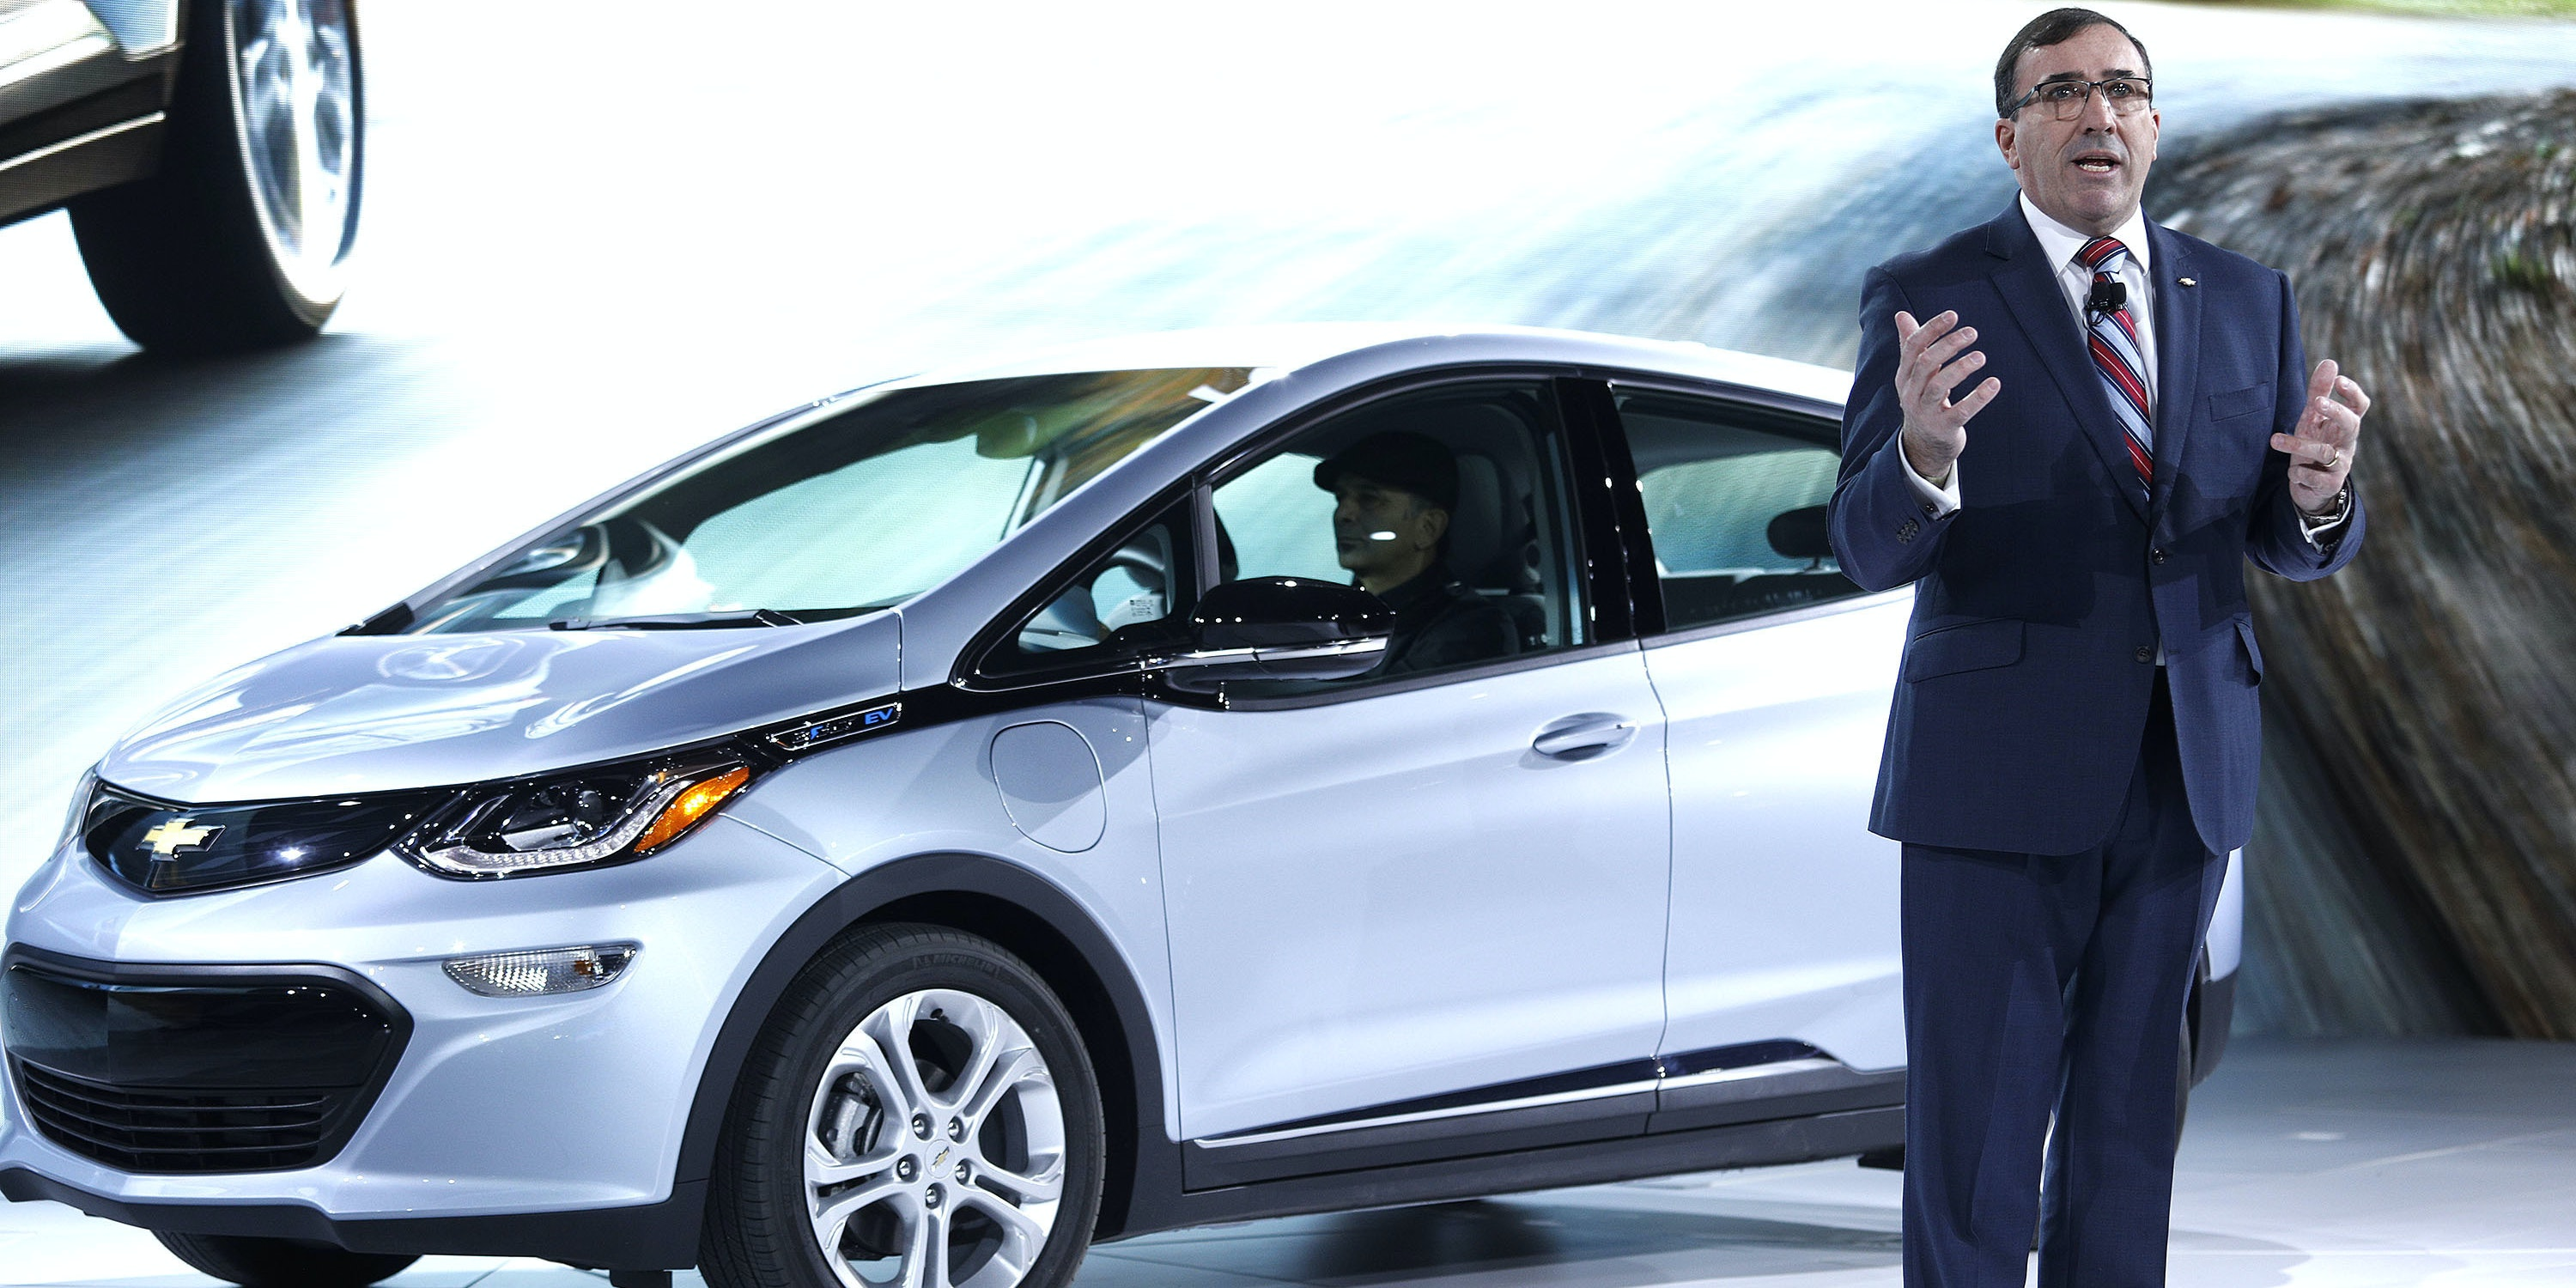 DETROIT, MI - JANUARY 9: Alan Batey, General Motors  President of North America, talks about the all-electric Chevrolet Bolt EV, which won the Car of the Year Award at the 2017 North American International Auto Show on January 9, 2017 in Detroit, Michigan. Approximately 5000 journalists from around the world and nearly 800,000 people are expected to attend the NAIAS between January 8th and January 22nd to see the more than 750 vehicles and numerous interactive displays. (Photo by Bill Pugliano/Getty Images)